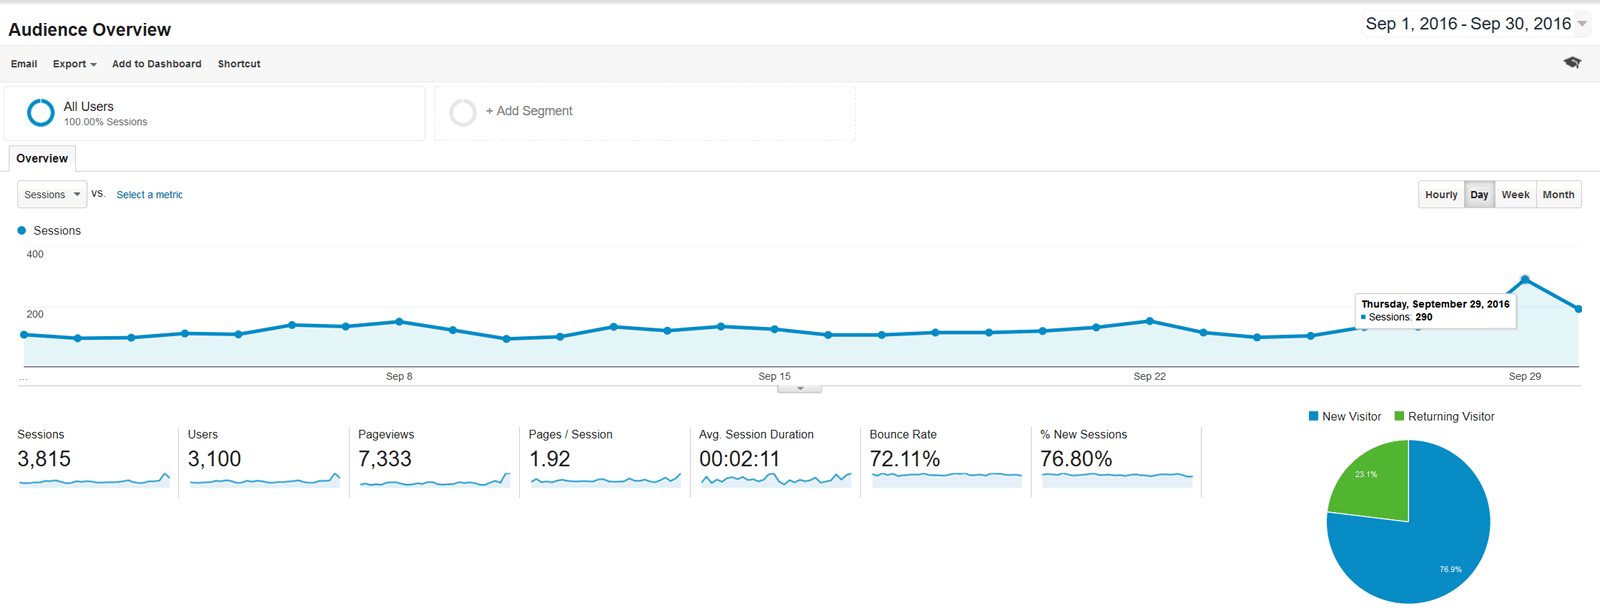 Google Analytics - Audience Overview - 2016-09-01 through 2016-09-30